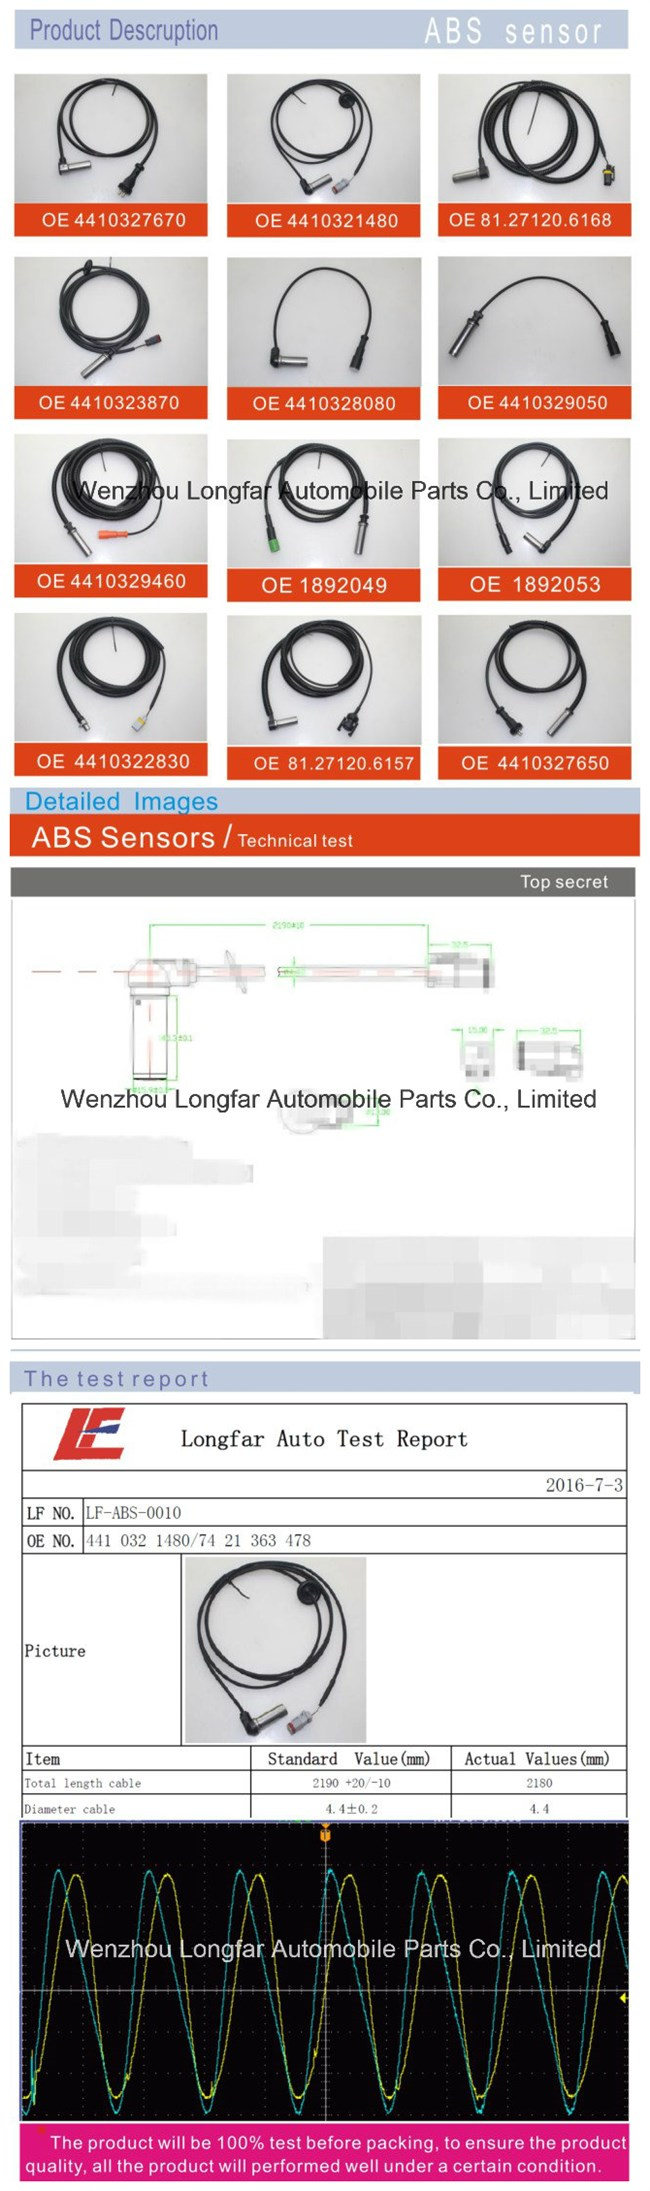 Truck Auto Brake Pad Wear Sensor Indicator Transducer 20928533, 68326623, 7420928552, 3986607, 20392985, 20442608 for Volvo